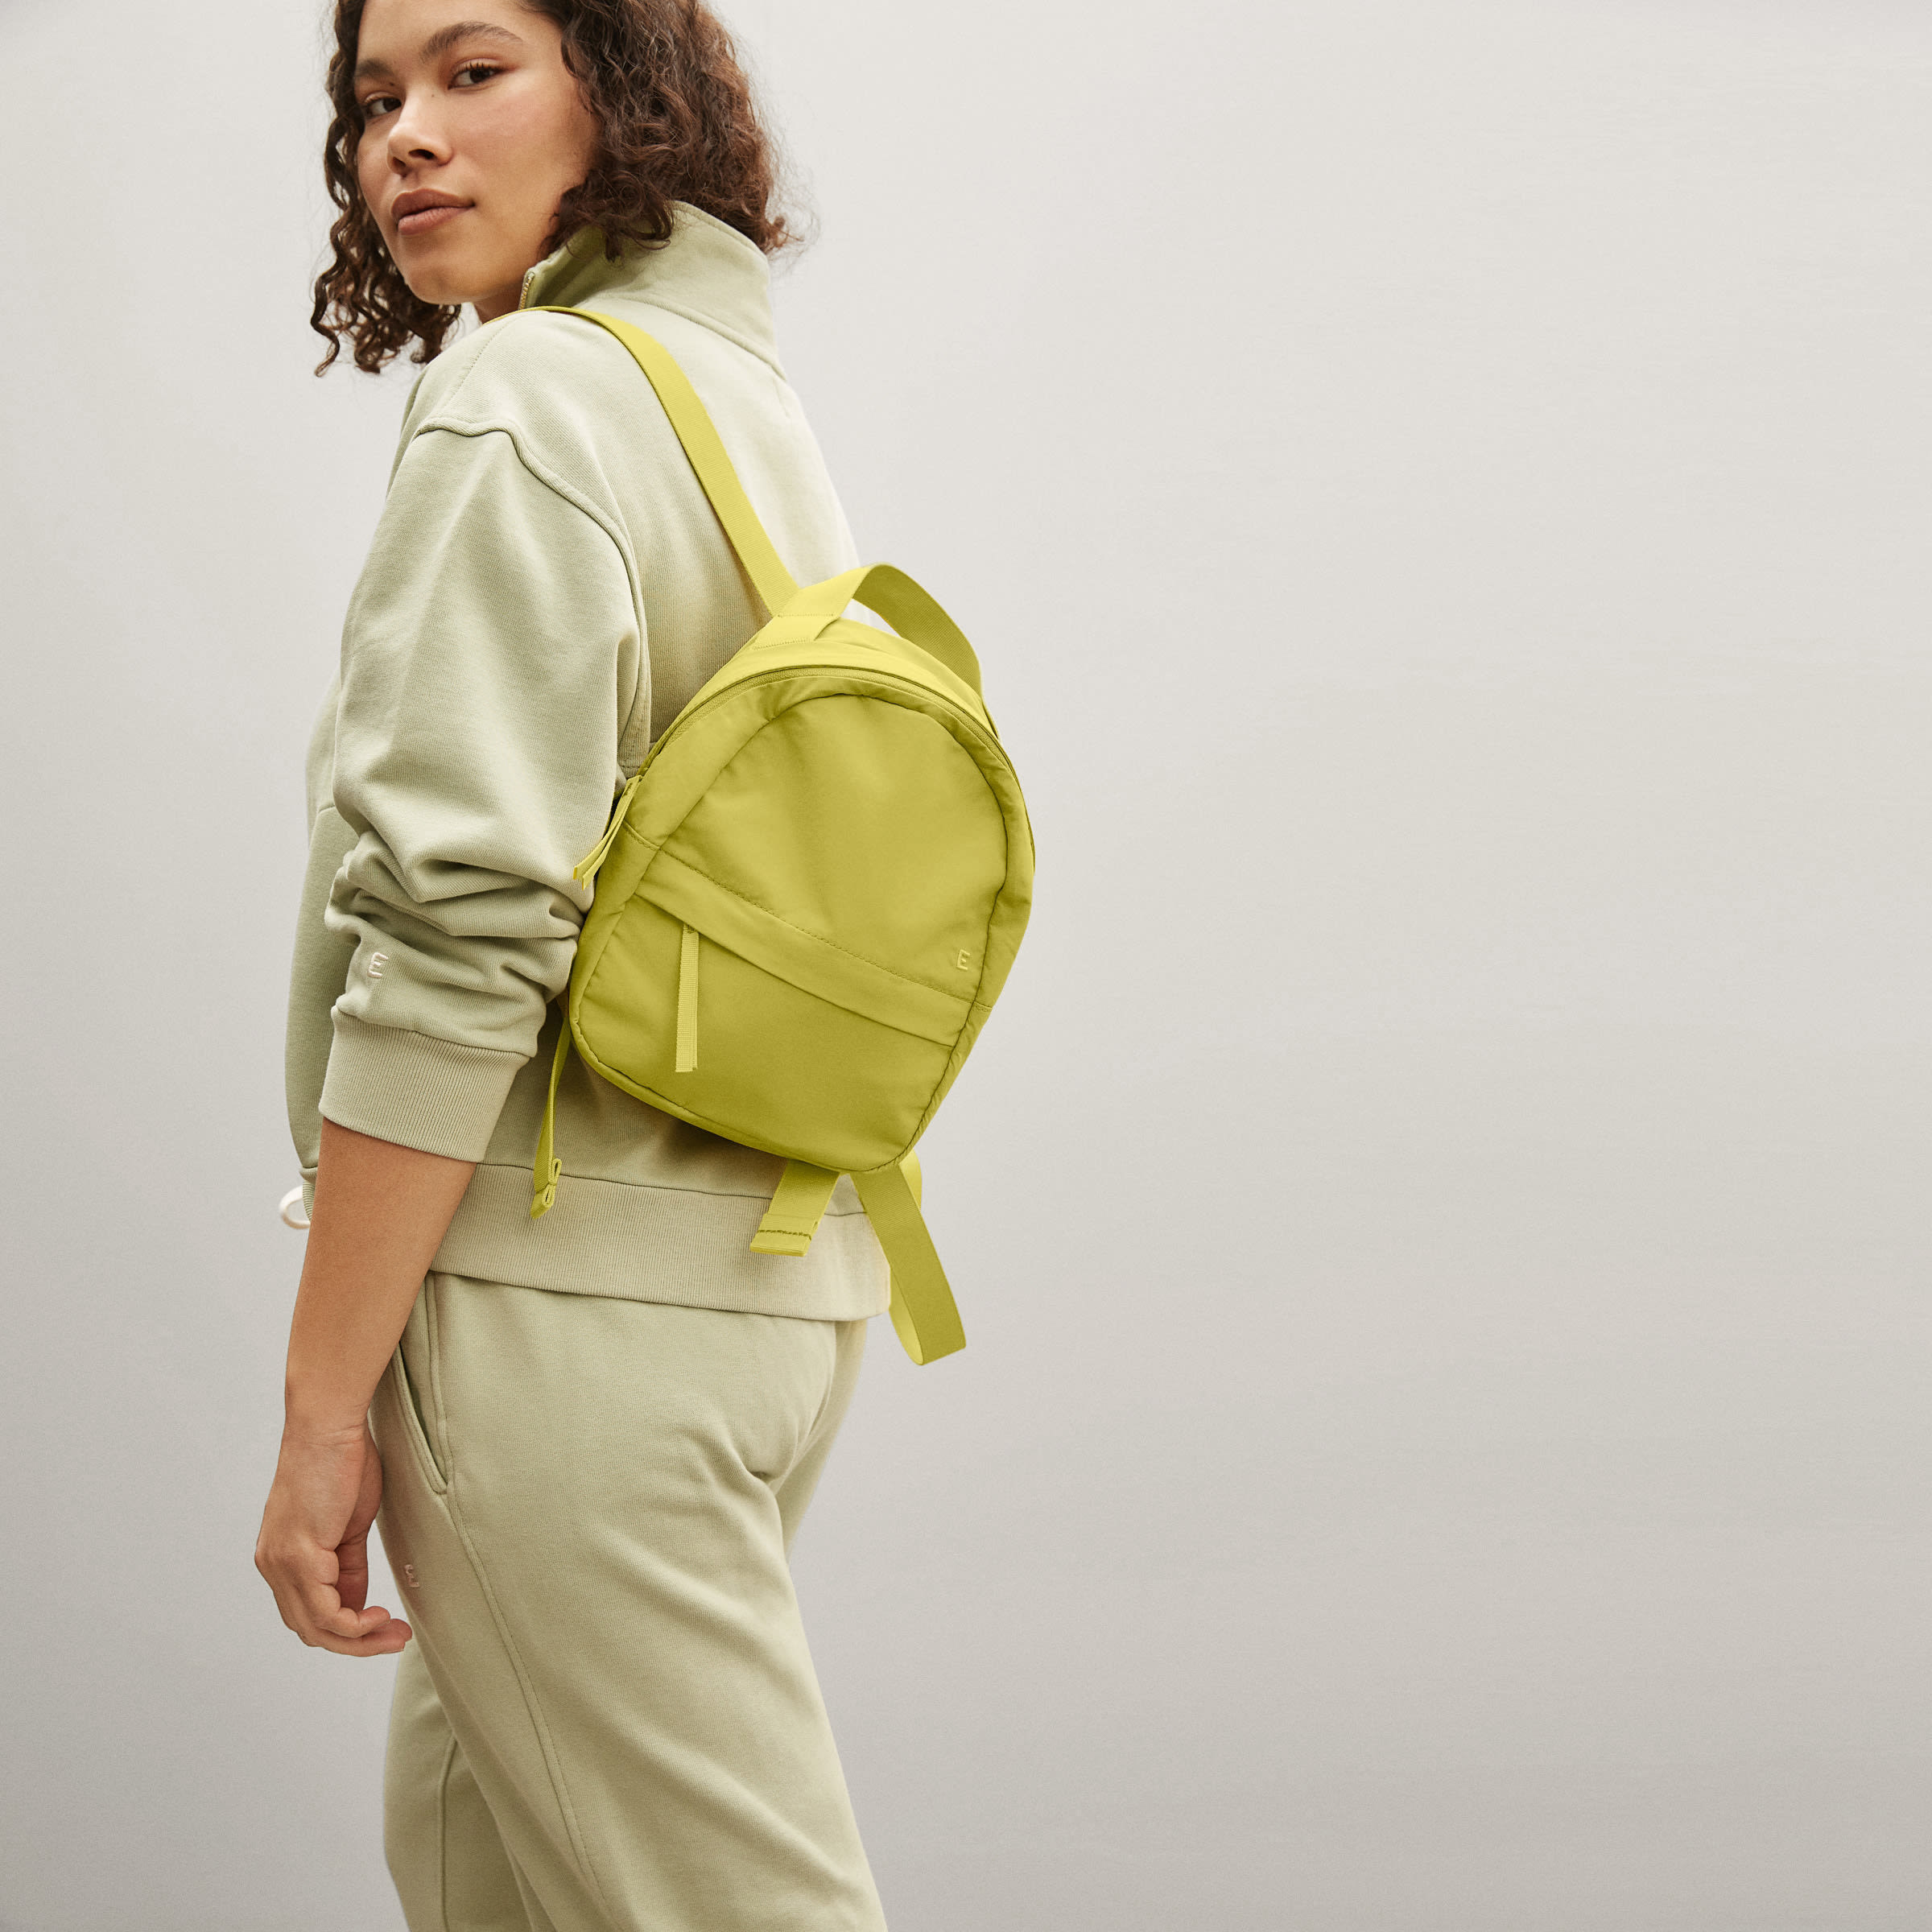 a model carrying a small yellow backpack